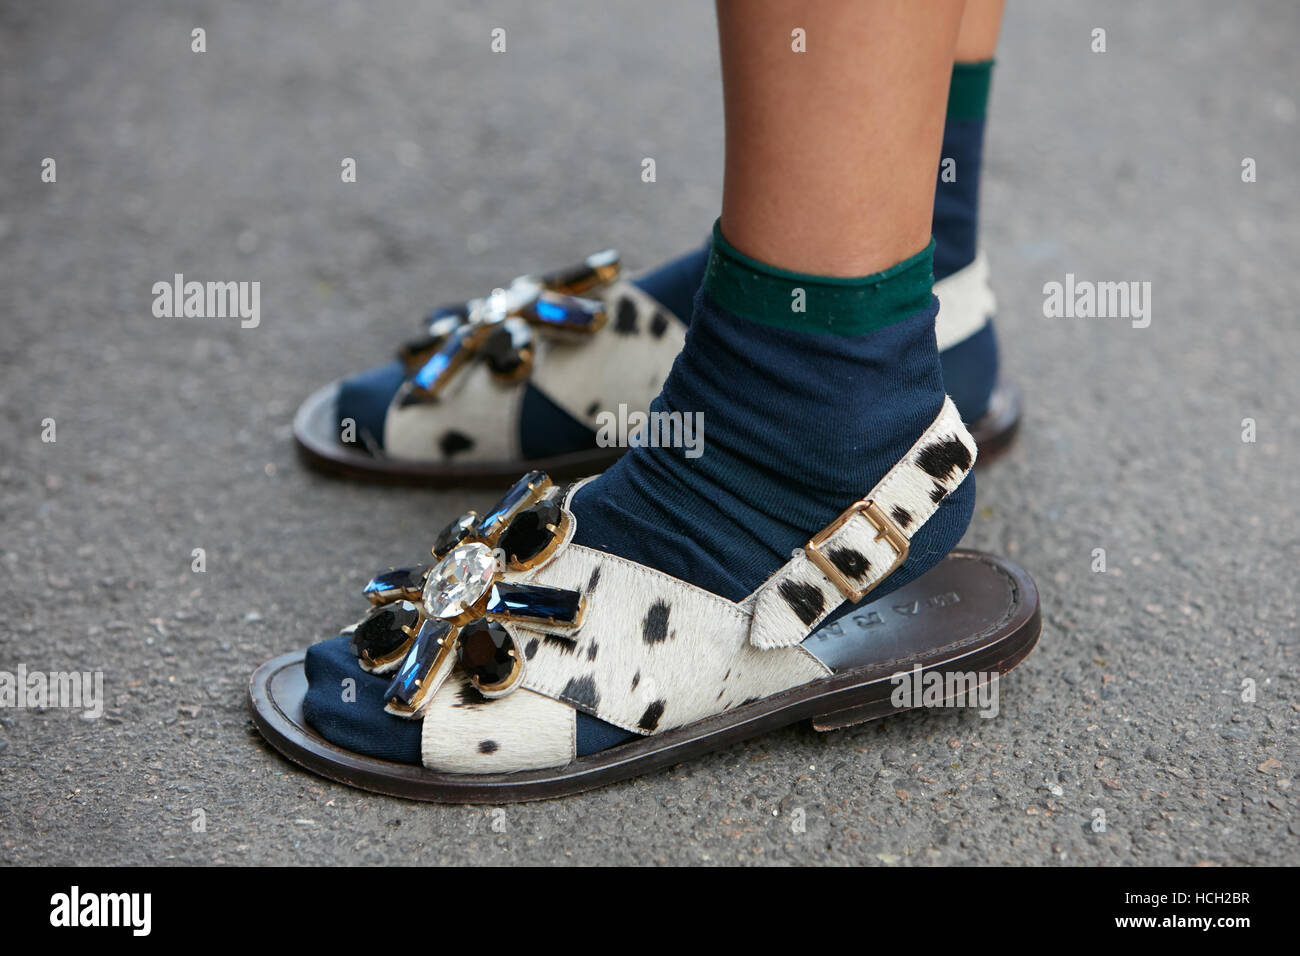 Frau mit Marni Sandalen mit Edelsteine vor Max Mara Fashion-Show, Milan Fashion Week Streetstyle am 22. September Stockfoto